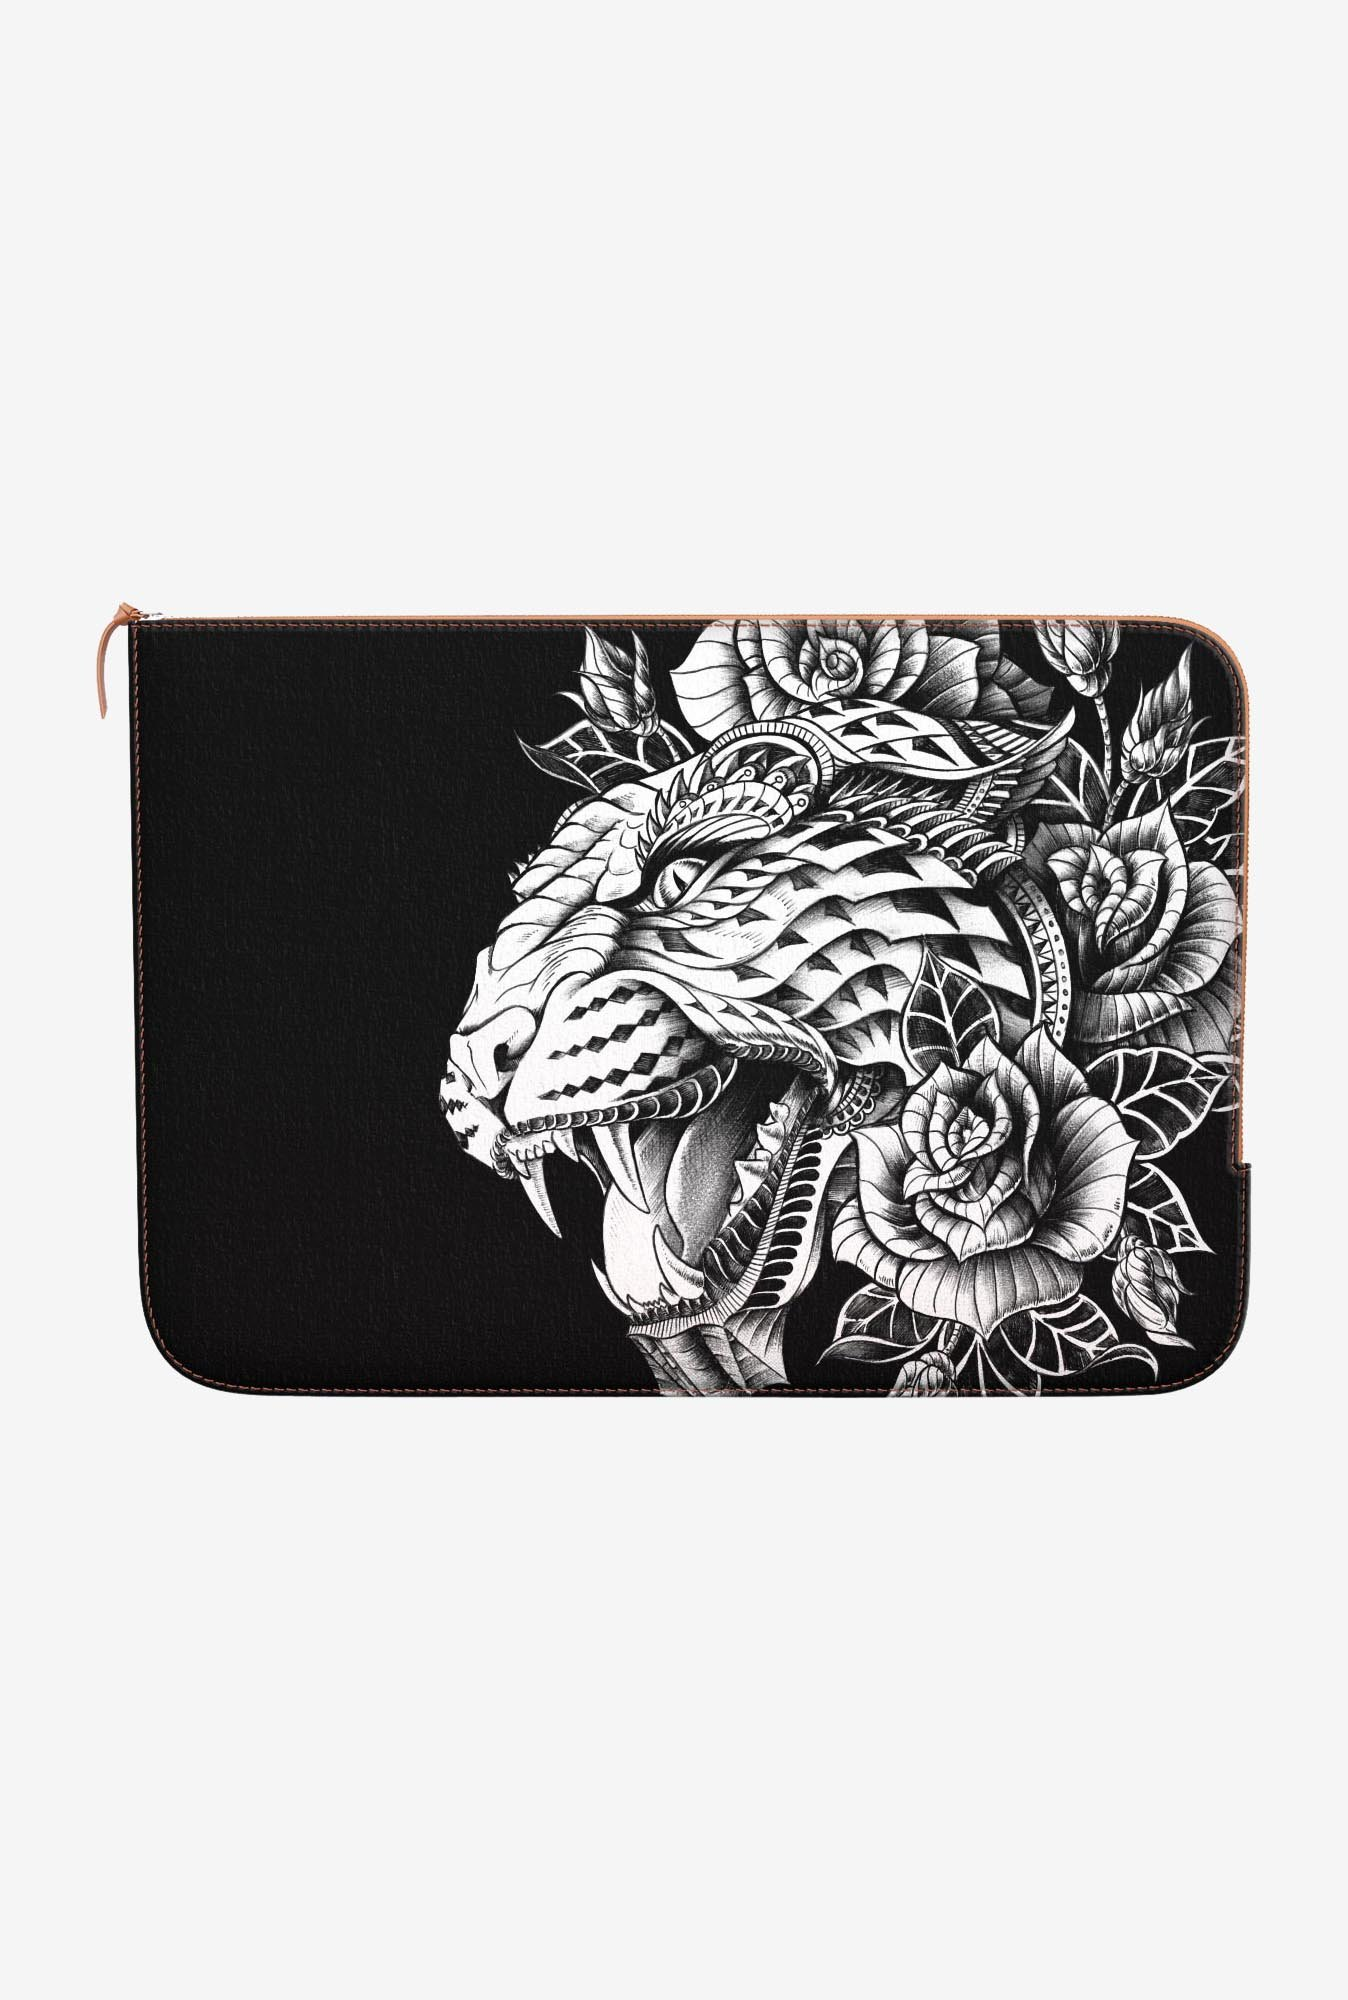 DailyObjects Ornate Leopard MacBook Pro 15 Zippered Sleeve